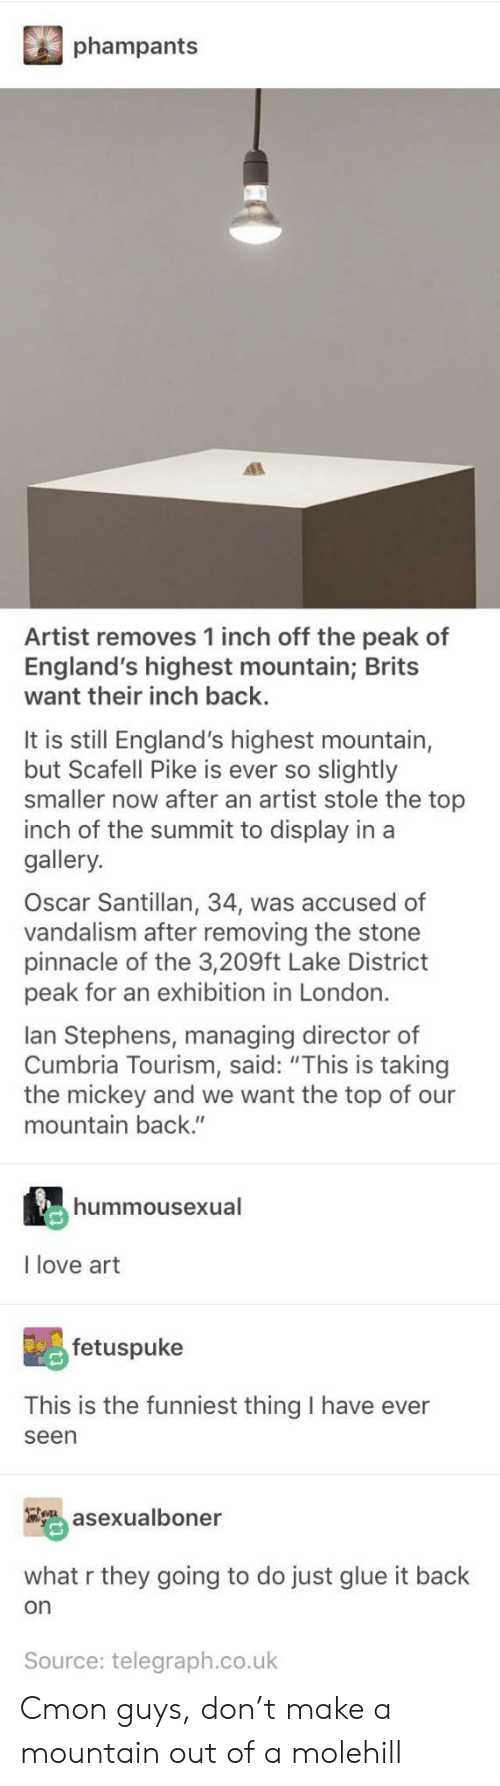 "Love, London, and Pinnacle: phampants  Artist removes 1 inch off the peak of  England's highest mountain; Brits  want their inch back.  It is still England's highest mountain,  but Scafell Pike is ever so slightly  smaller now after an artist stole the top  inch of the summit to display in a  gallery.  Oscar Santillan, 34, was accused of  vandalism after removing the stone  pinnacle of the 3,209ft Lake District  peak for an exhibition in London.  lan Stephens, managing director of  Cumbria Tourism, said: ""This is taking  the mickey and we want the top of our  mountain back.""  hummousexual  I love art  fetuspuke  This is the funniest thing I have ever  seen  asexualboner  what r they going to do just glue it back  on  Source: telegraph.co.uk Cmon guys, don't make a mountain out of a molehill"